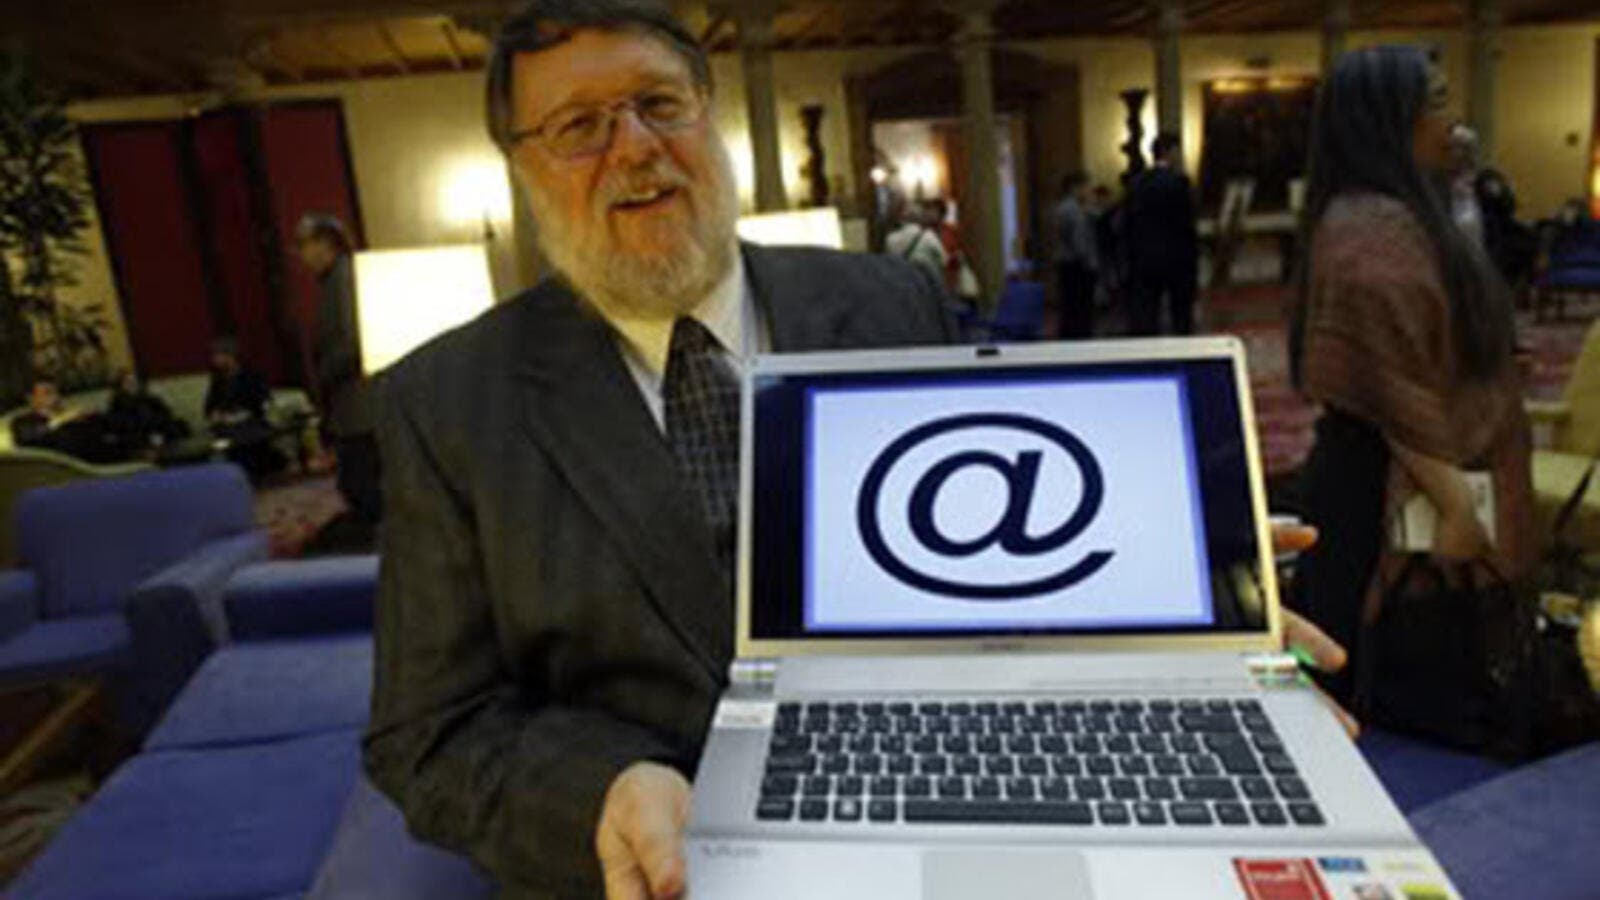 Ray Tomlinson is credited with the invention of email and chose the '@' symbol. (En.trend.az)